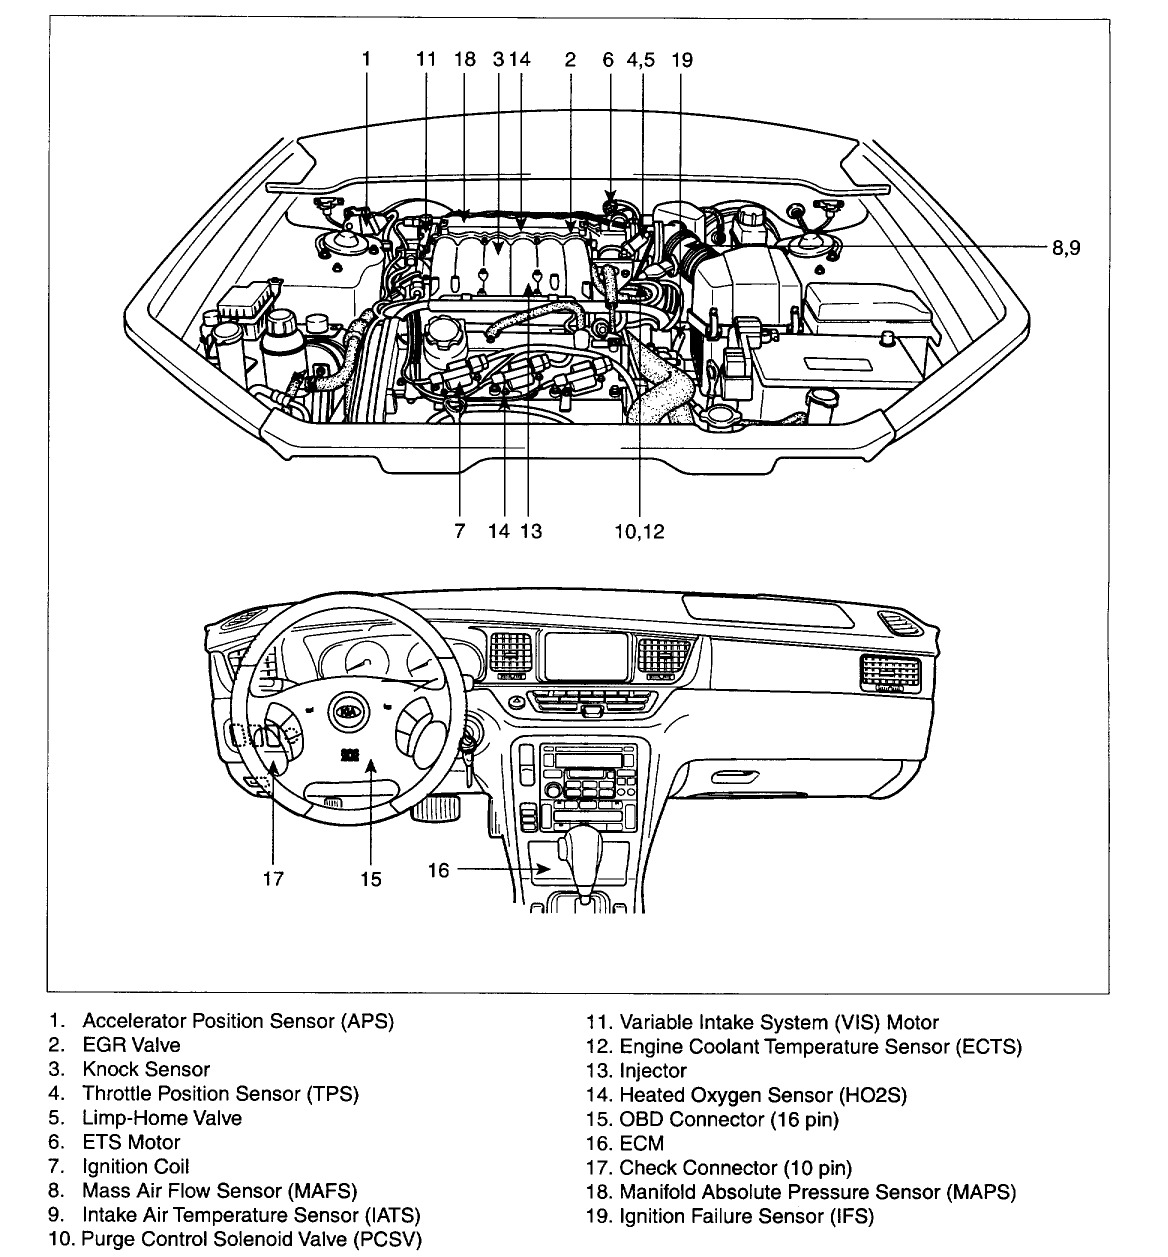 2004 Kium Sorento Engine Diagram